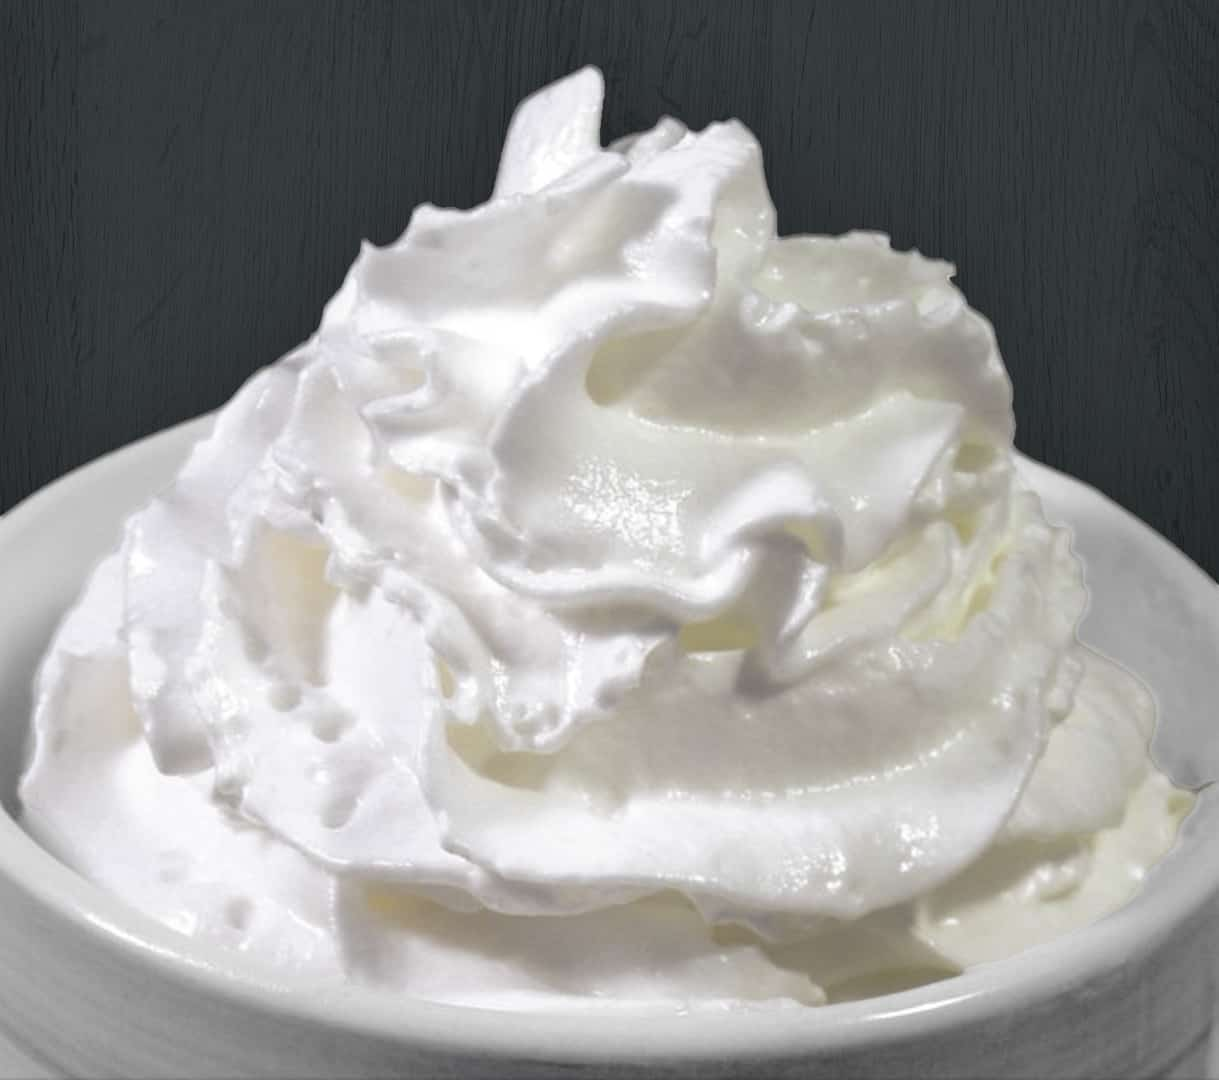 image of whipping cream